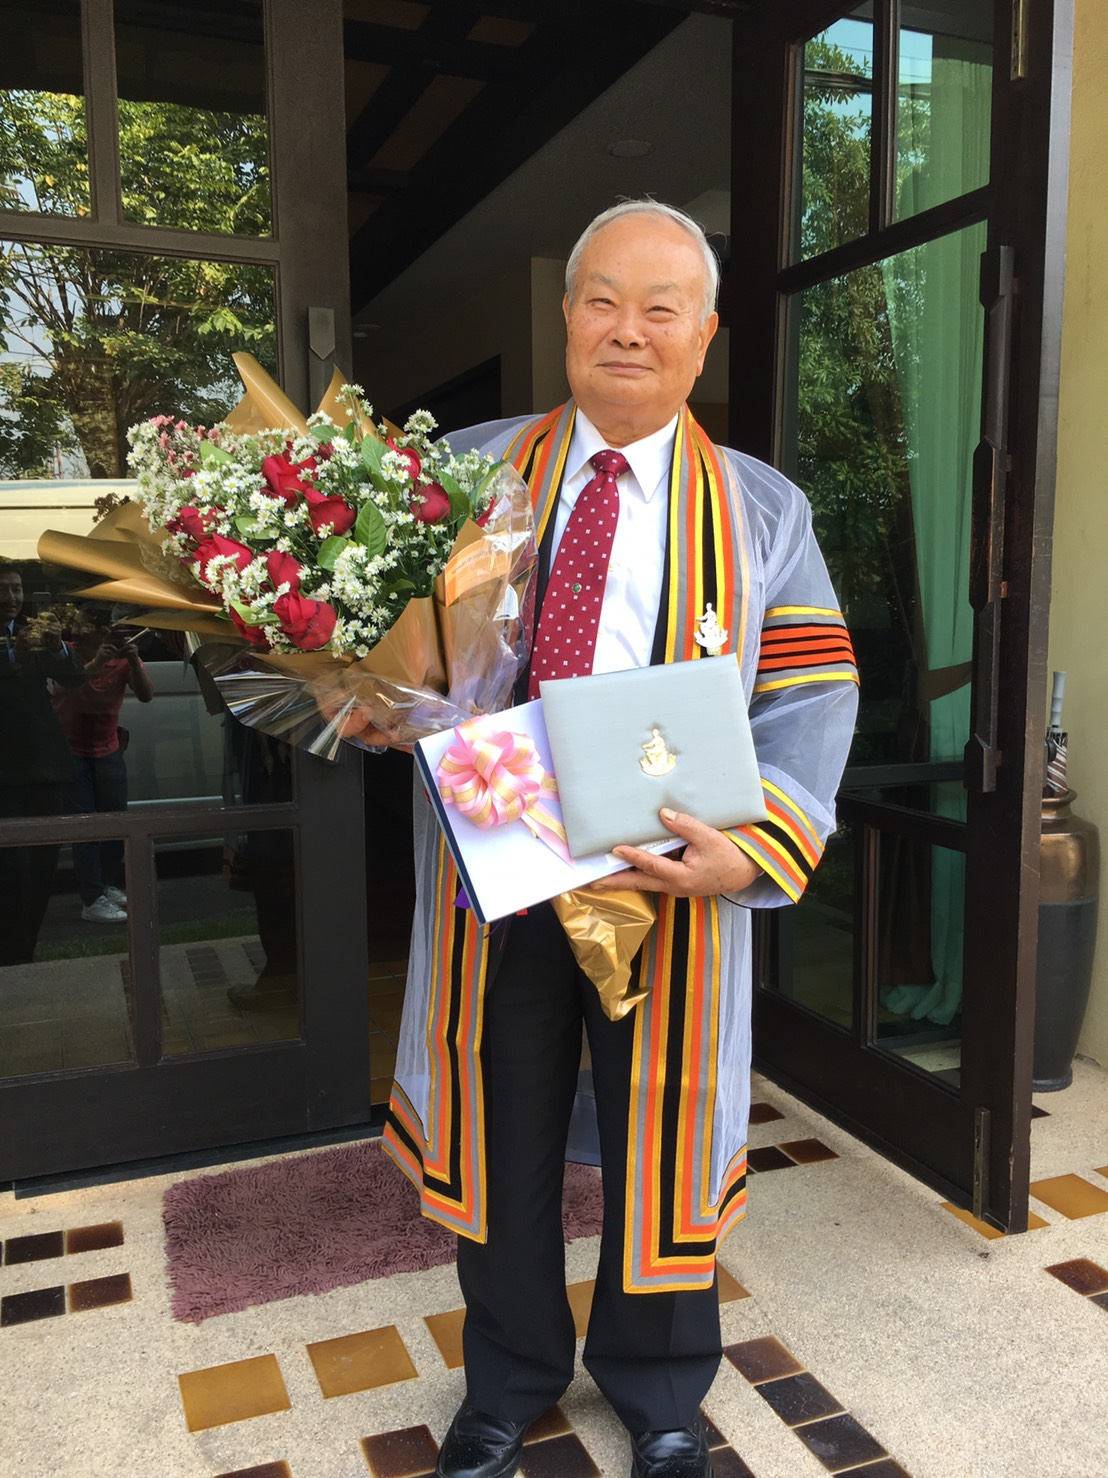 Prof. Higa Honored with Honorary Doctoral Degree in Thailand